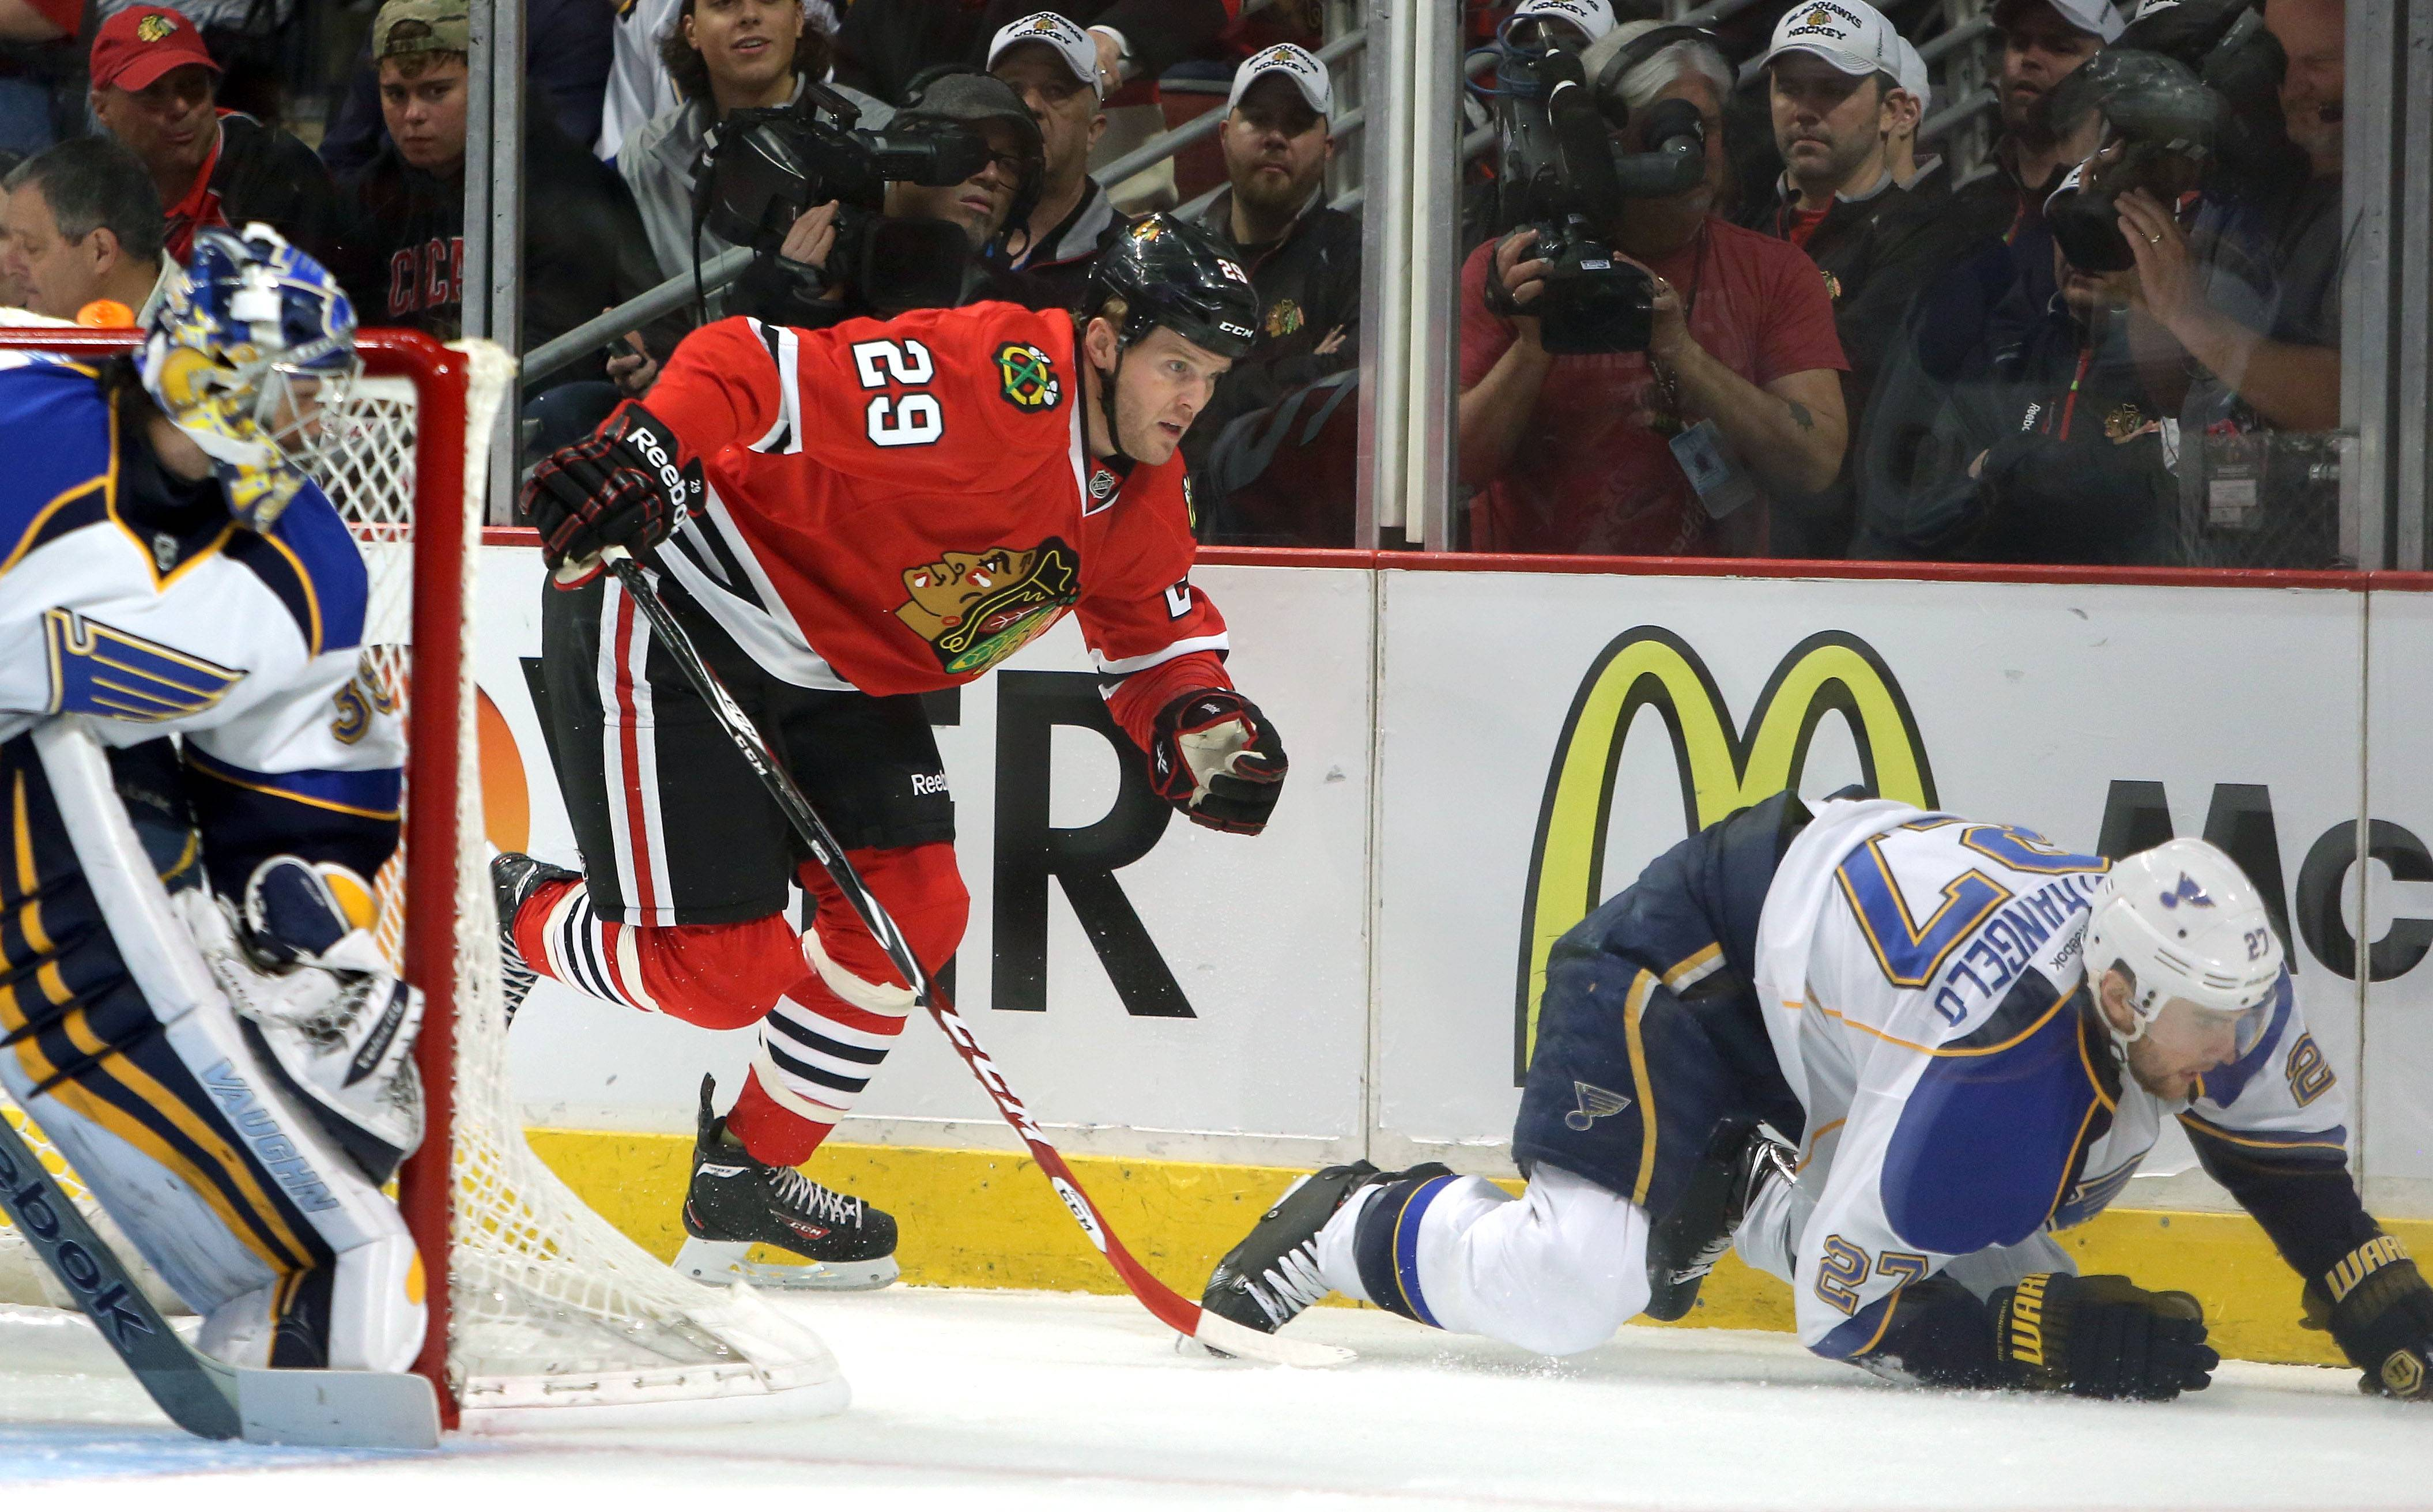 Chicago Blackhawks left wing Bryan Bickell chases down St. Louis Blues defenseman Alex Pietrangelo.